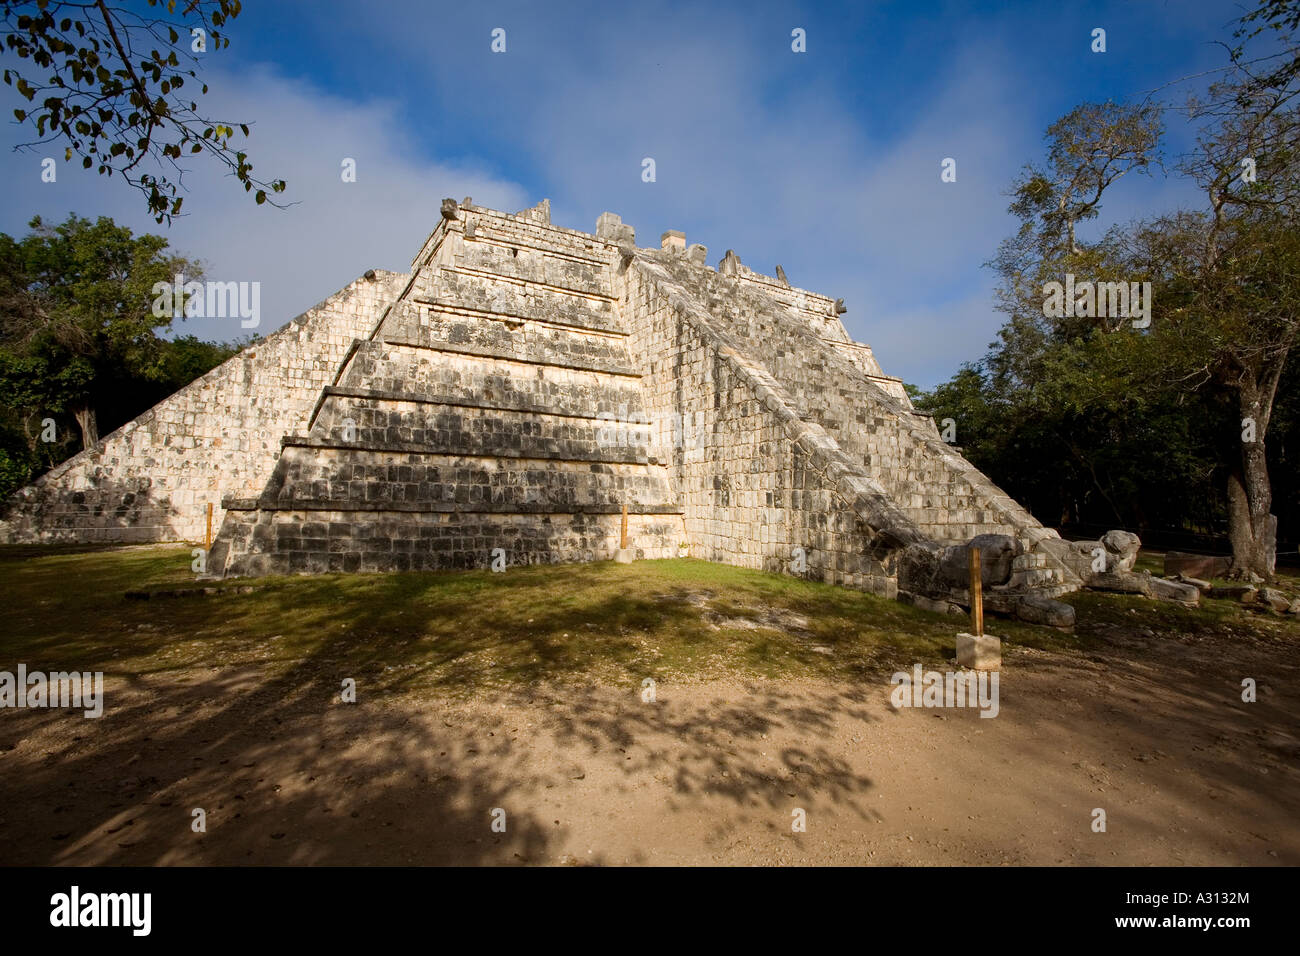 The Ossuary or tomb of the High Priest at the ruined Mayan city of Chichen Itza in Mexico Stock Photo